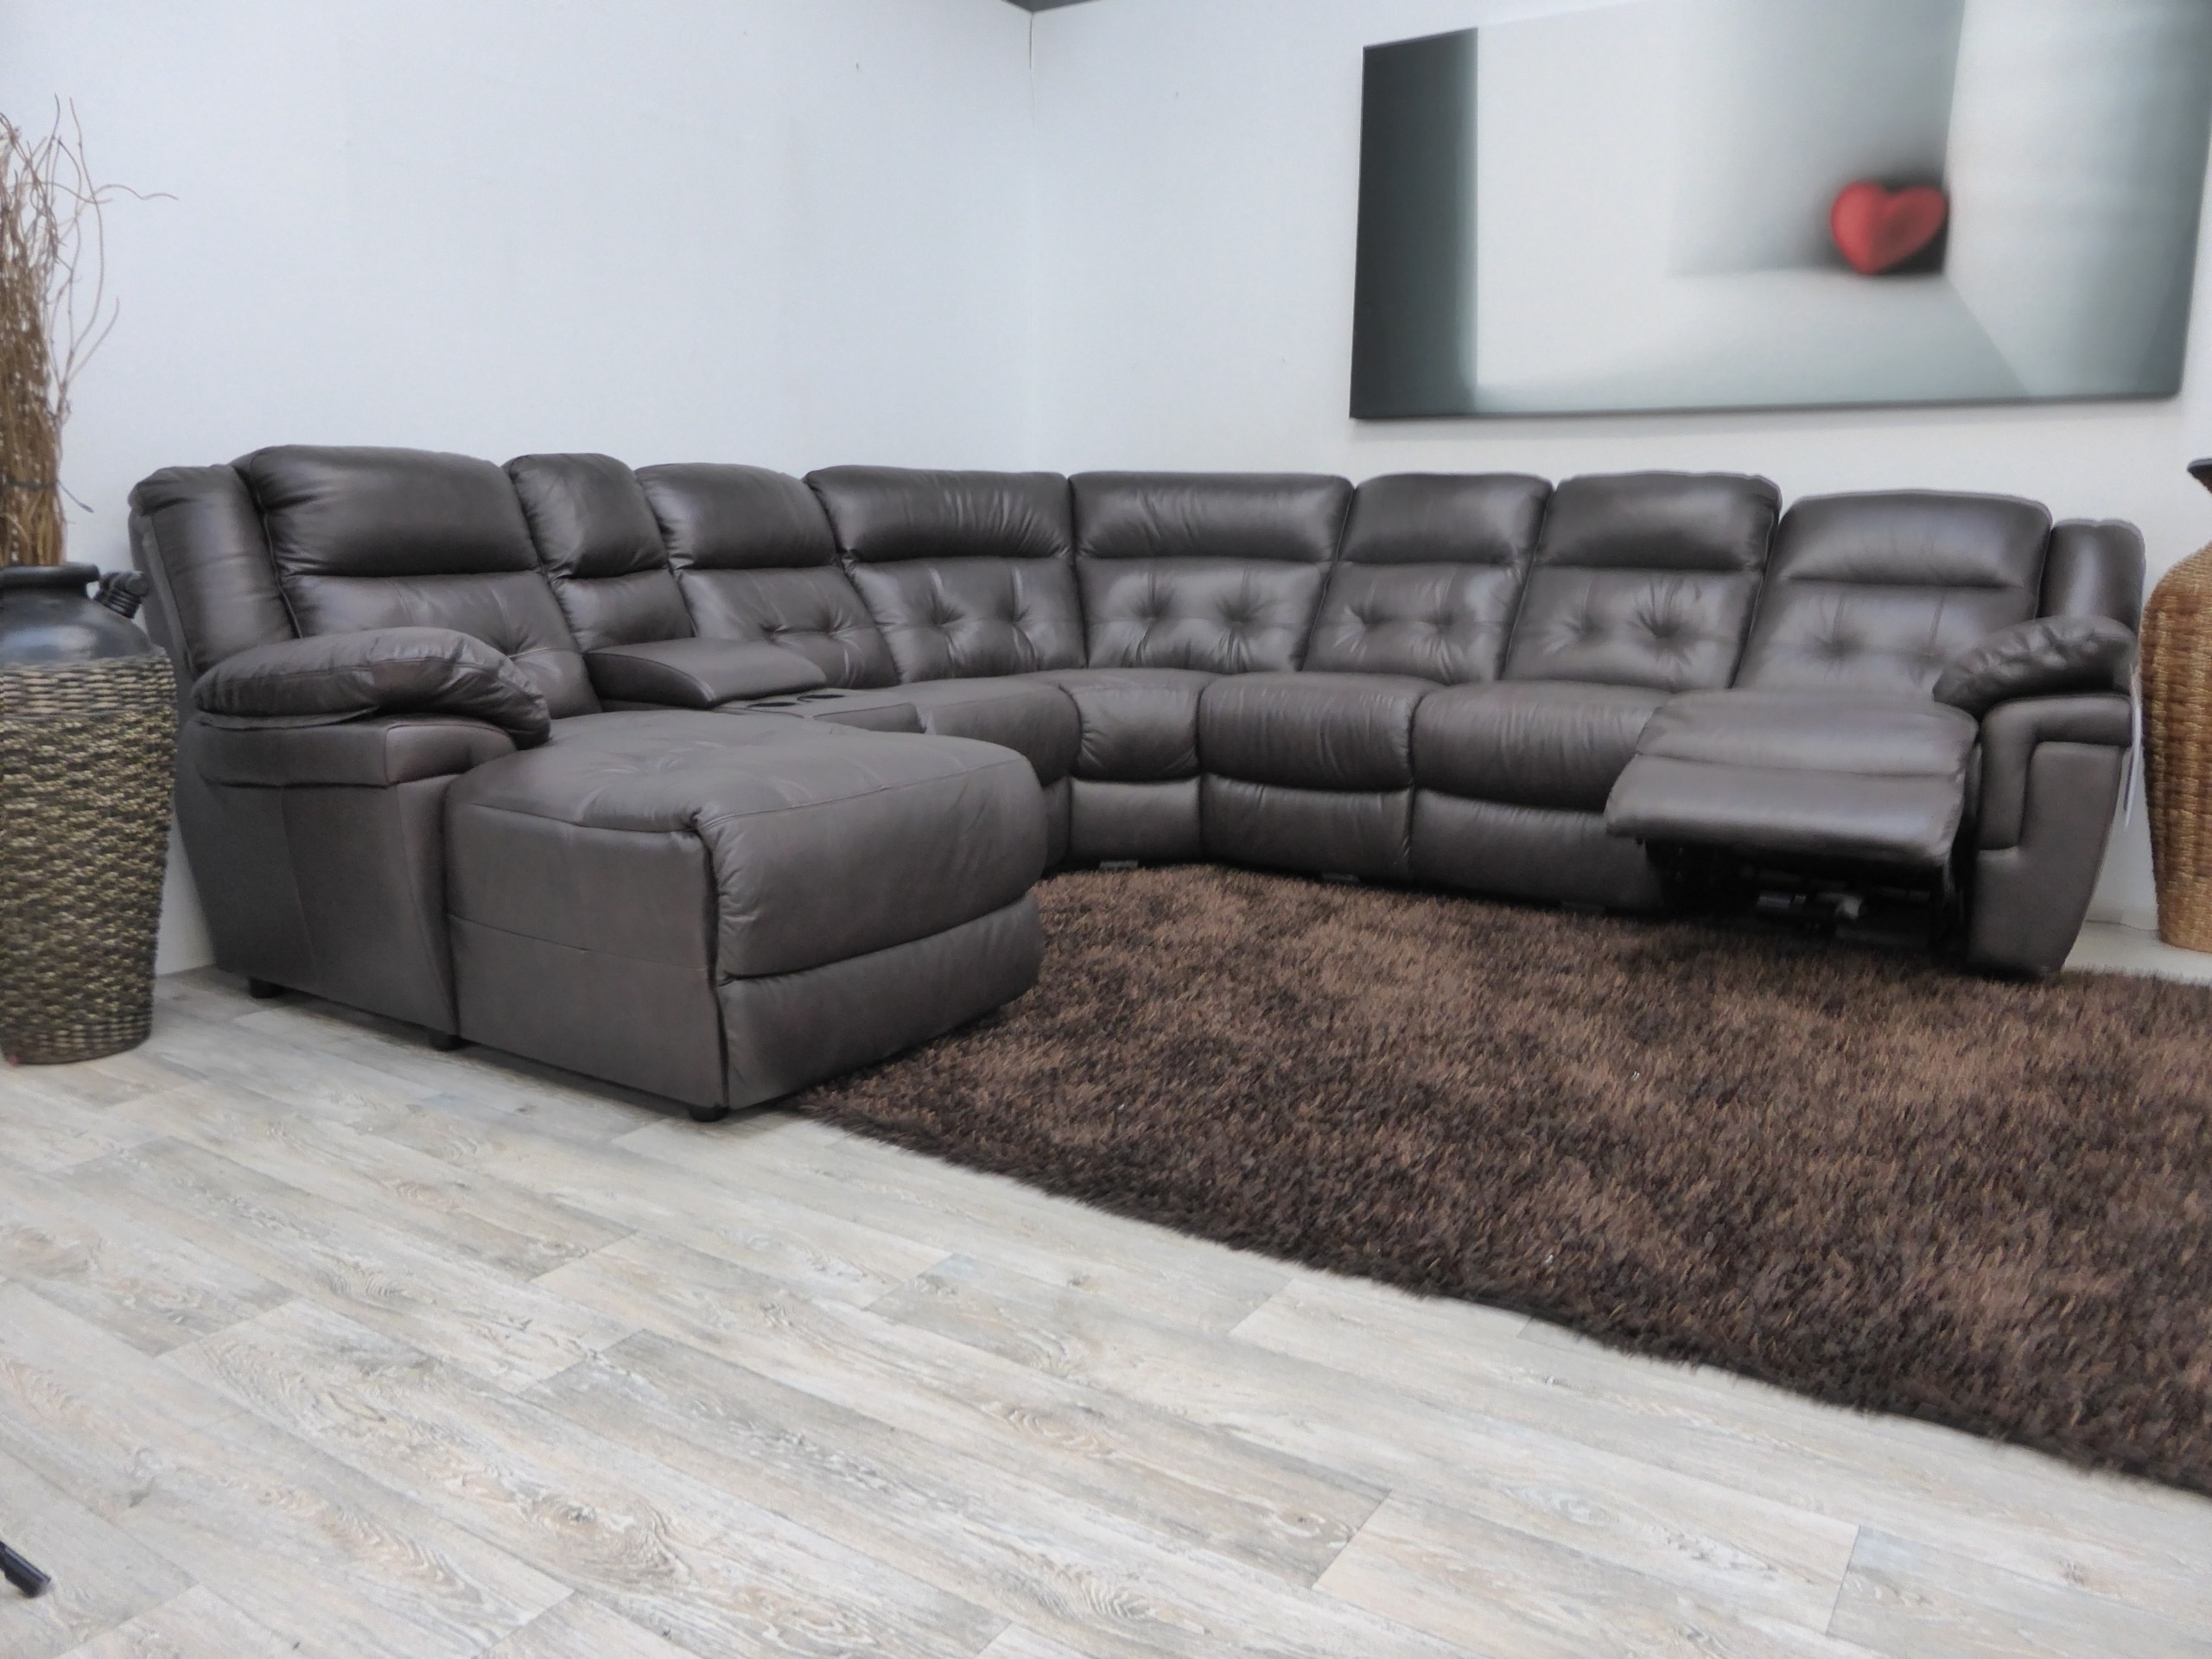 Excellent Sofa In Craigslist Home Decor 88 Gamerscity Chair Design For Home Gamerscityorg